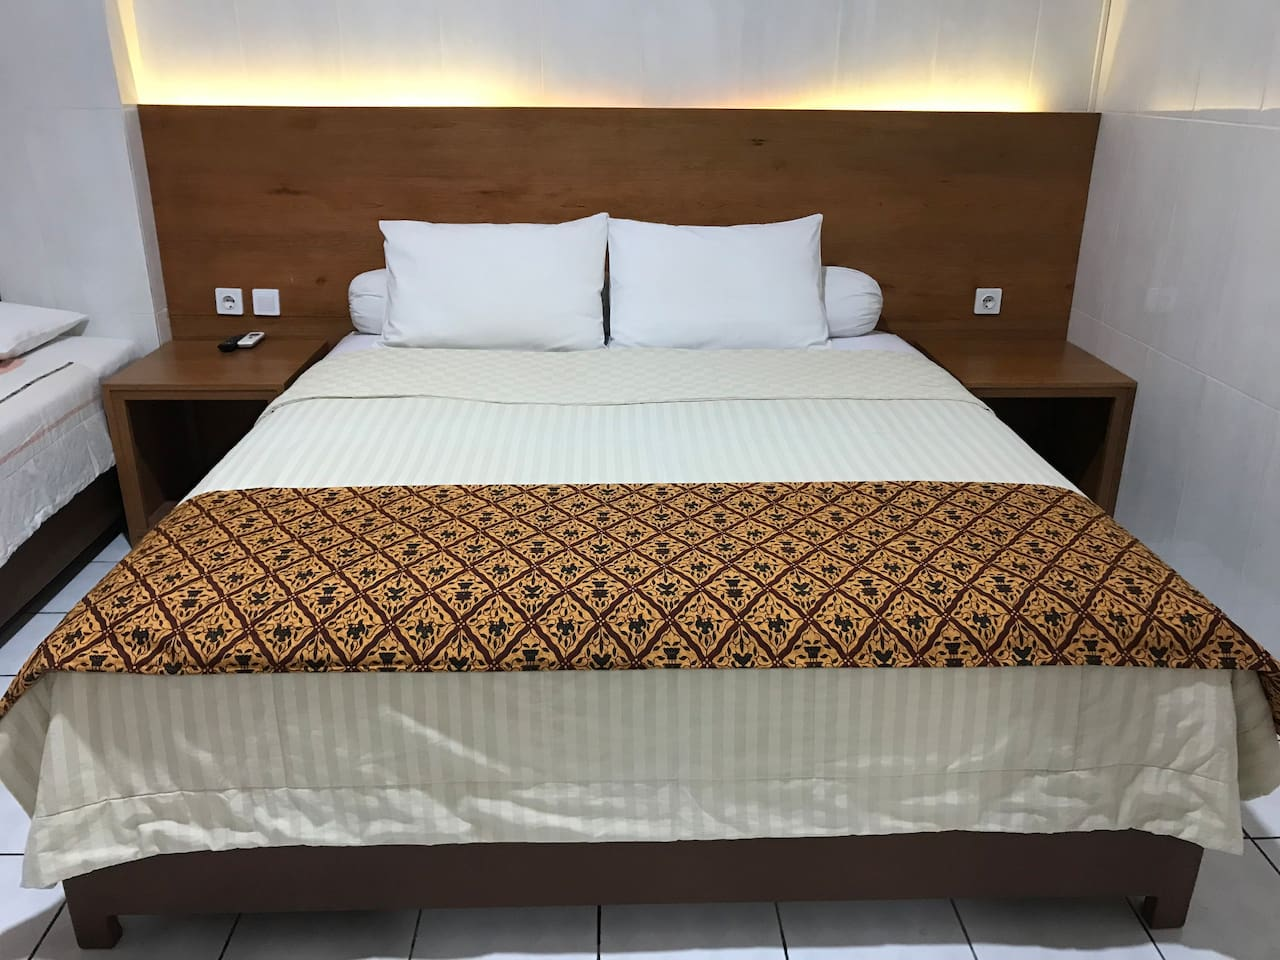 Double Bed Room, own Restroom, TV, WiFi, Worktable, Chair